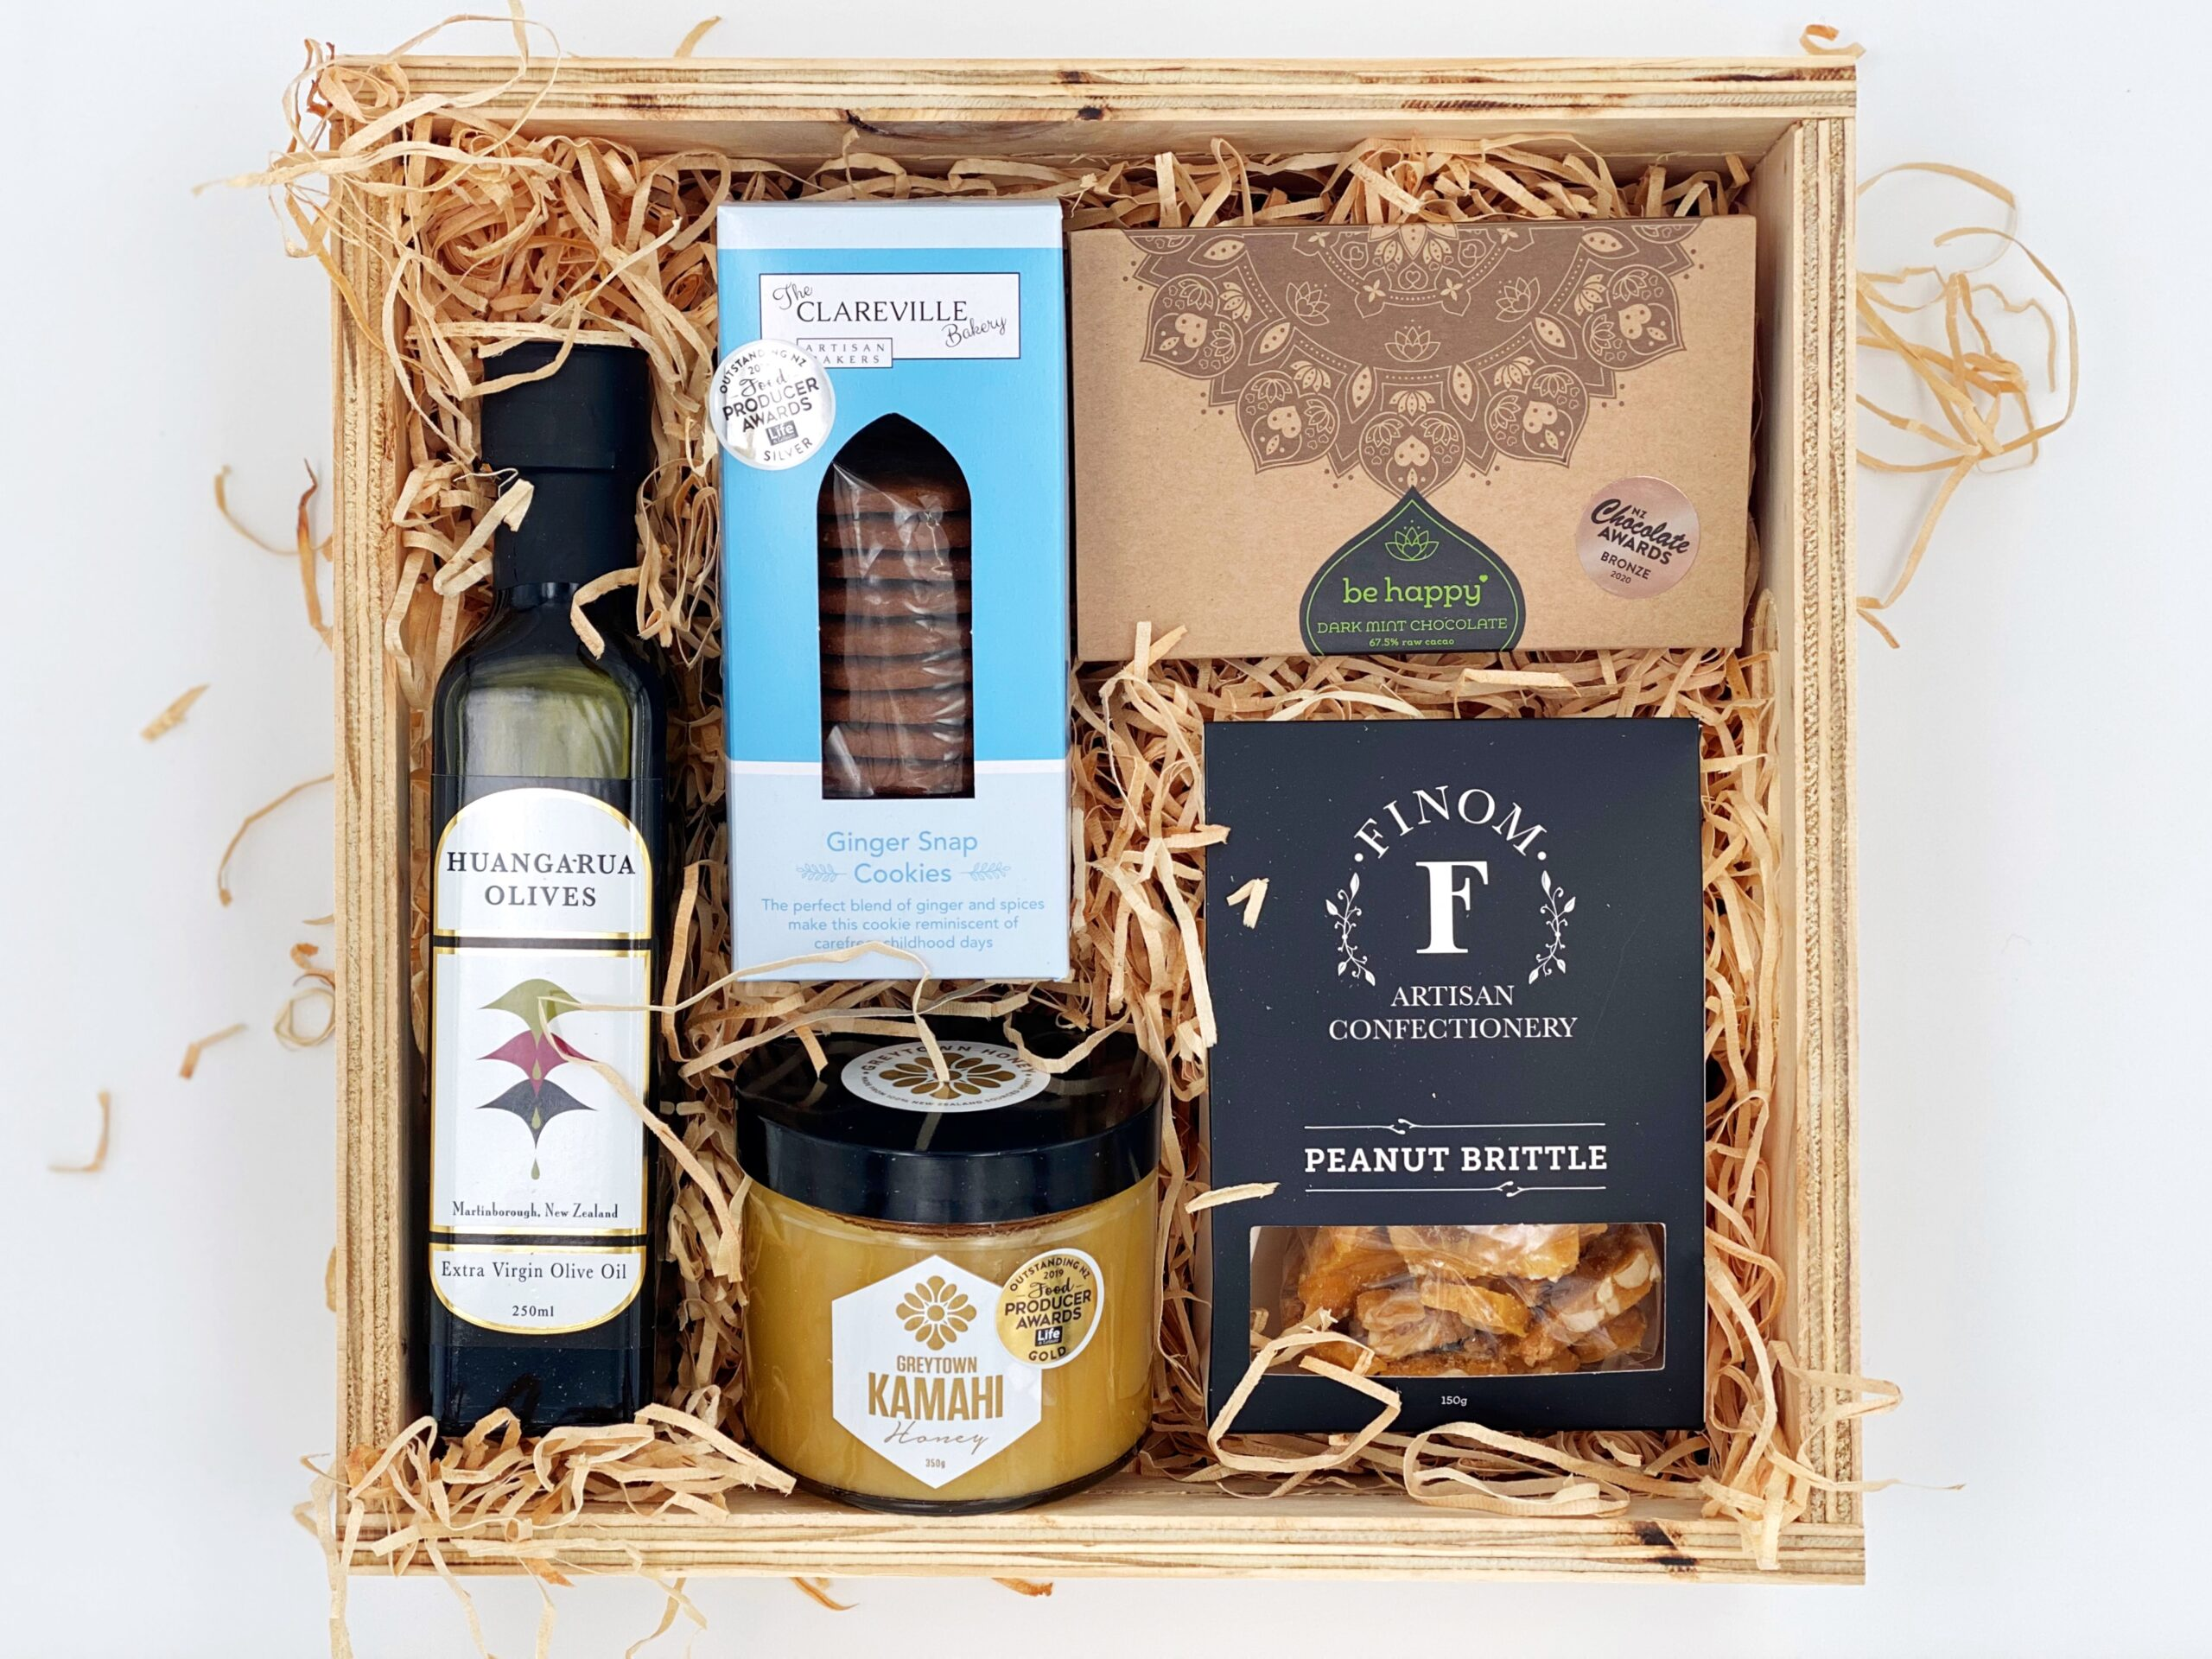 Wonderful Wairarapa Gift Box